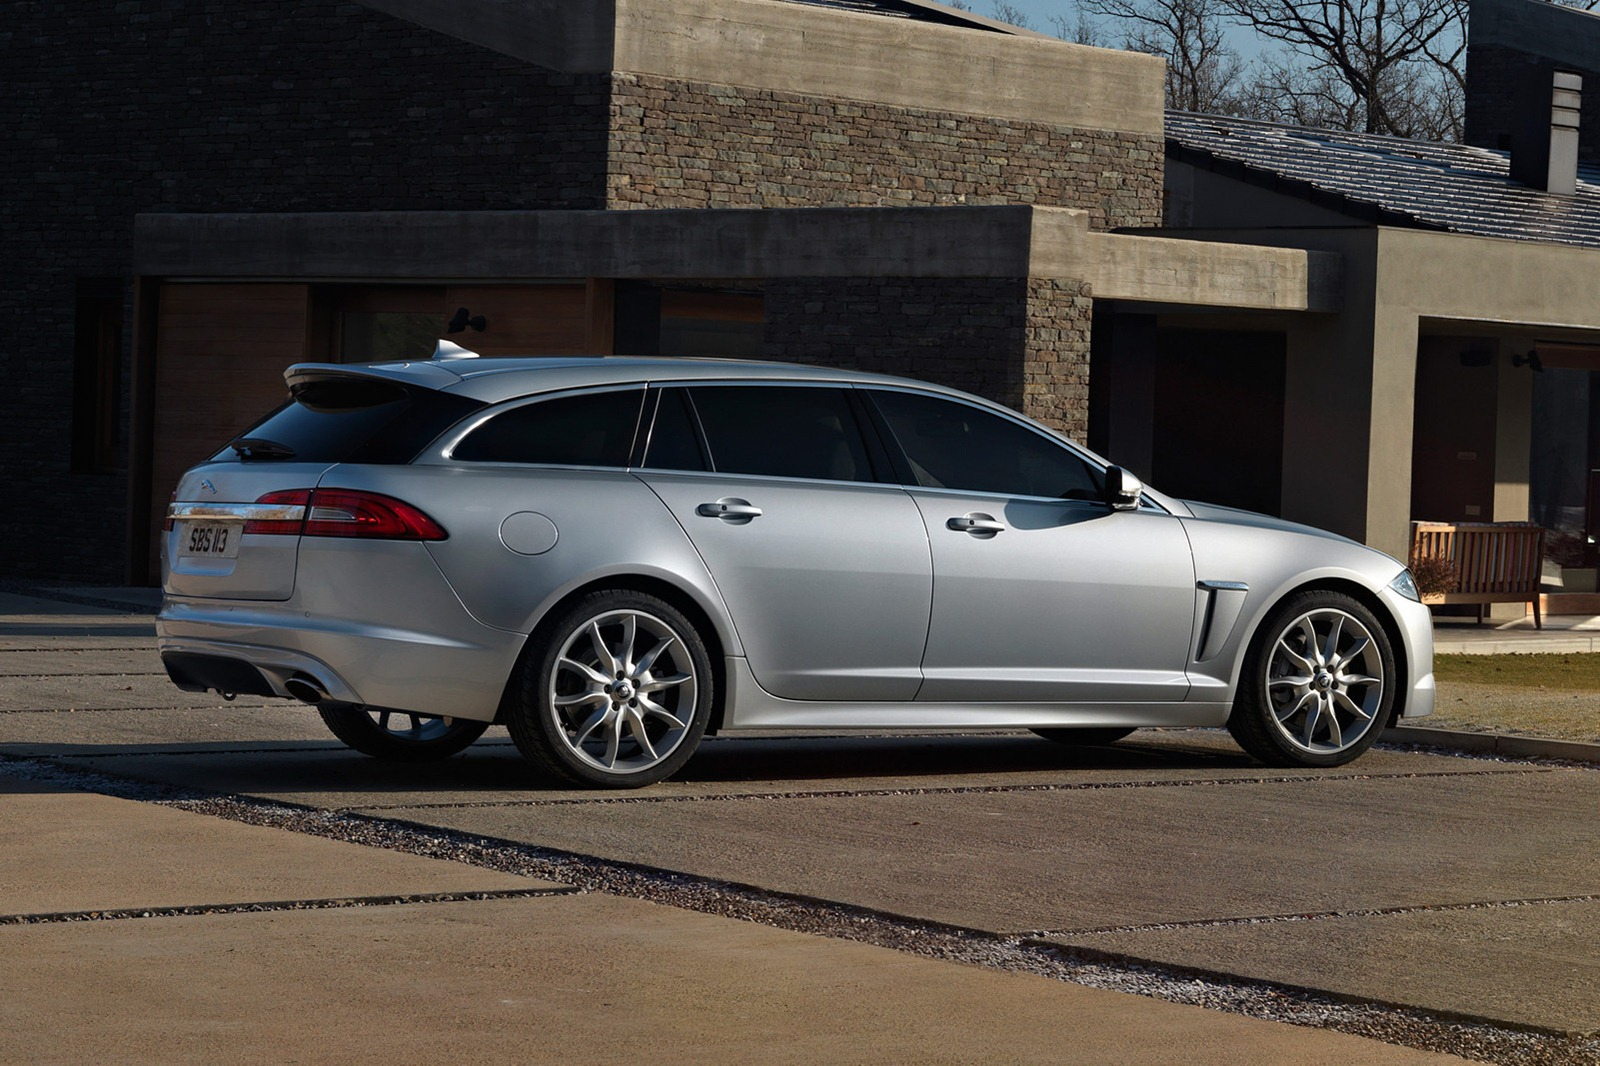 jaguar xf sportbrake technical details history photos on. Black Bedroom Furniture Sets. Home Design Ideas